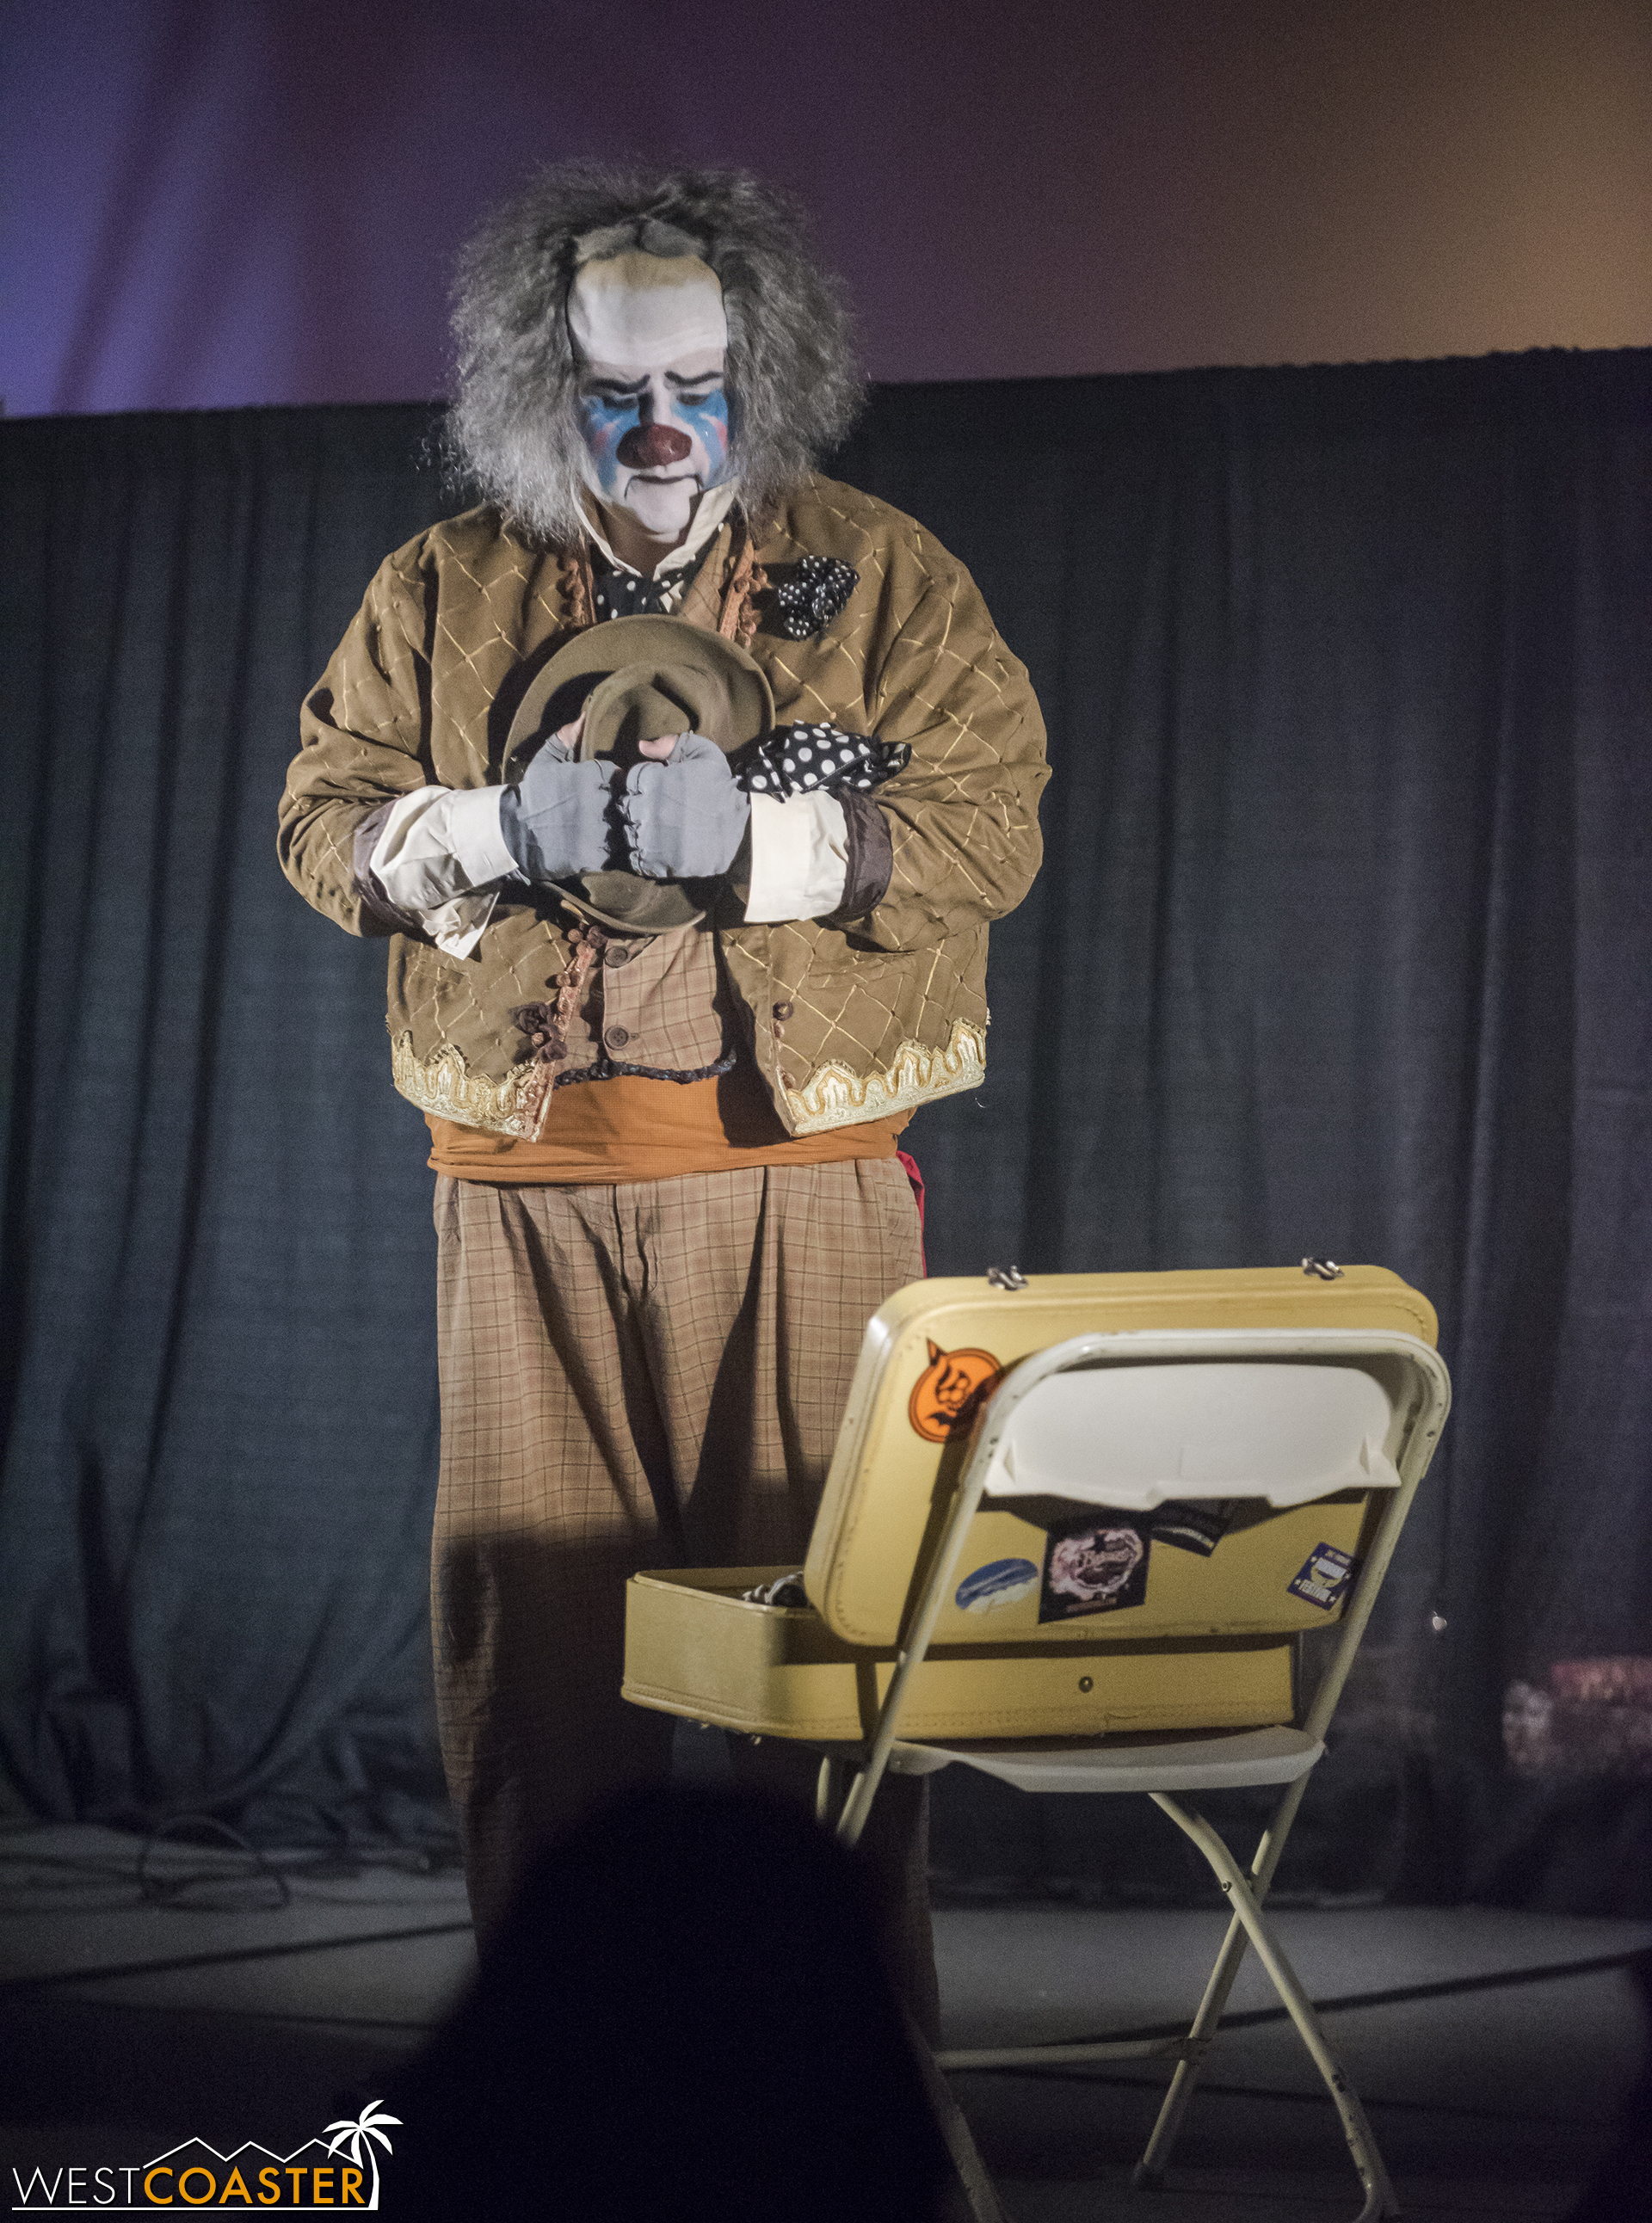 It also had Cecil the Sad Clown doing the most hilariously sad burlesque ever.